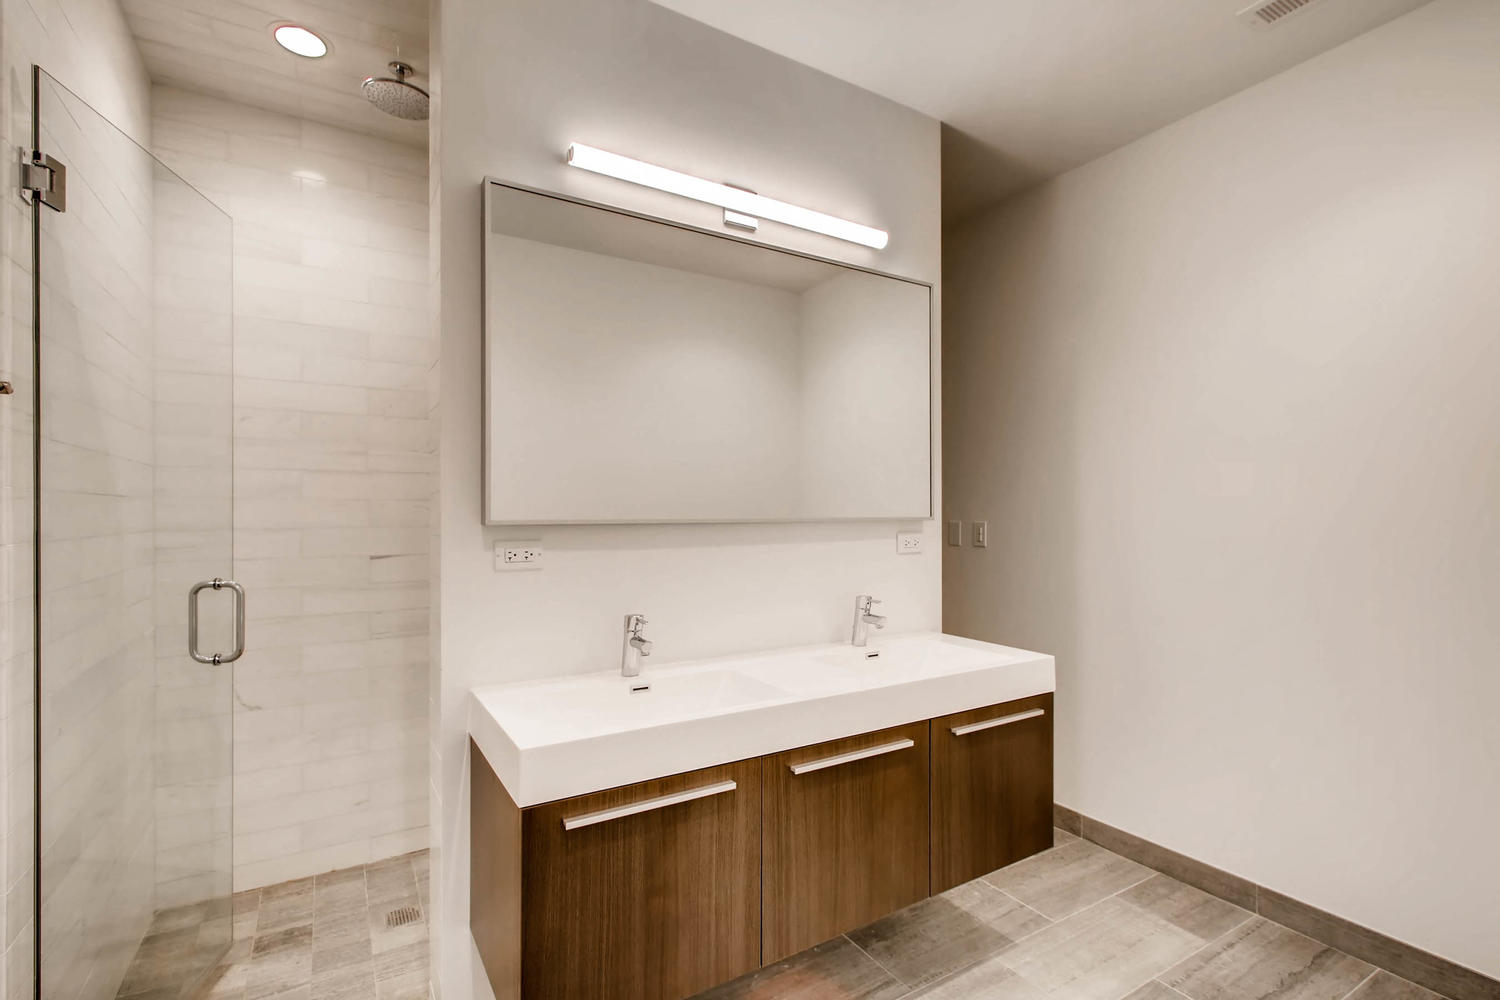 3508 N Reta Ave Chicago IL-large-026-7-Master Bathroom-1500x1000-72dpi.jpg